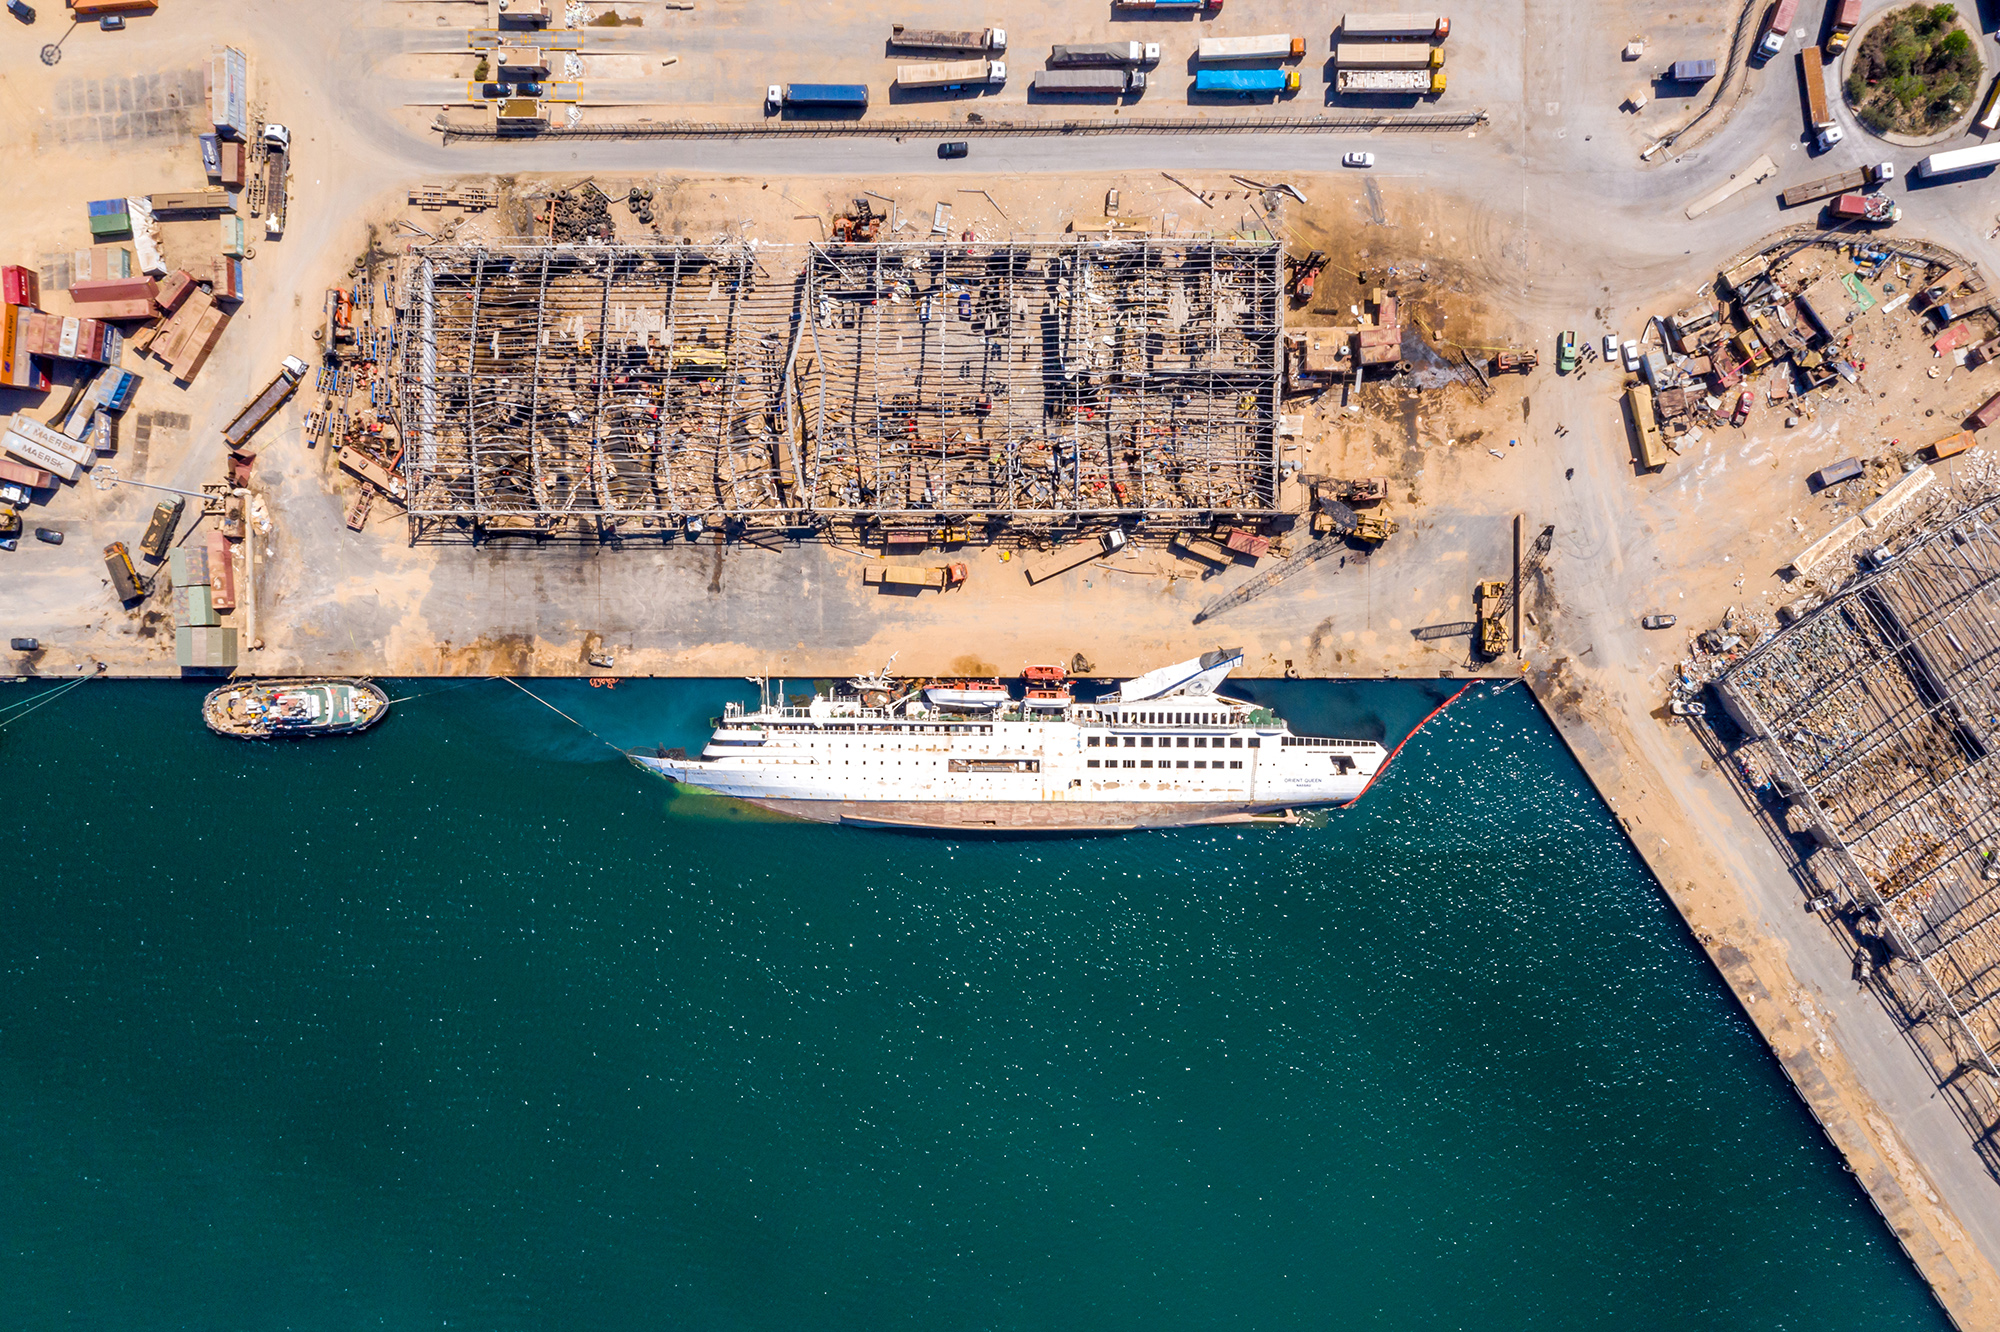 BEIRUT, LEBANON - AUGUST 21: An aerial view of a capsized cruise ship, damaged in the Beirut Port blast, on August 21, 2020 in Beirut, Lebanon. The explosion at Beirut's port killed over 200 people, injured thousands, and upended countless lives. There has been little visible support from government agencies to help residents clear debris and help the displaced. As residents continue to clean up after the Beirut port explosion, Lebanon has issued a two week lockdown starting August 21 after Coronavirus cases surged in the aftermath of the explosion. (Photo by Haytham Al Achkar/Getty Images)